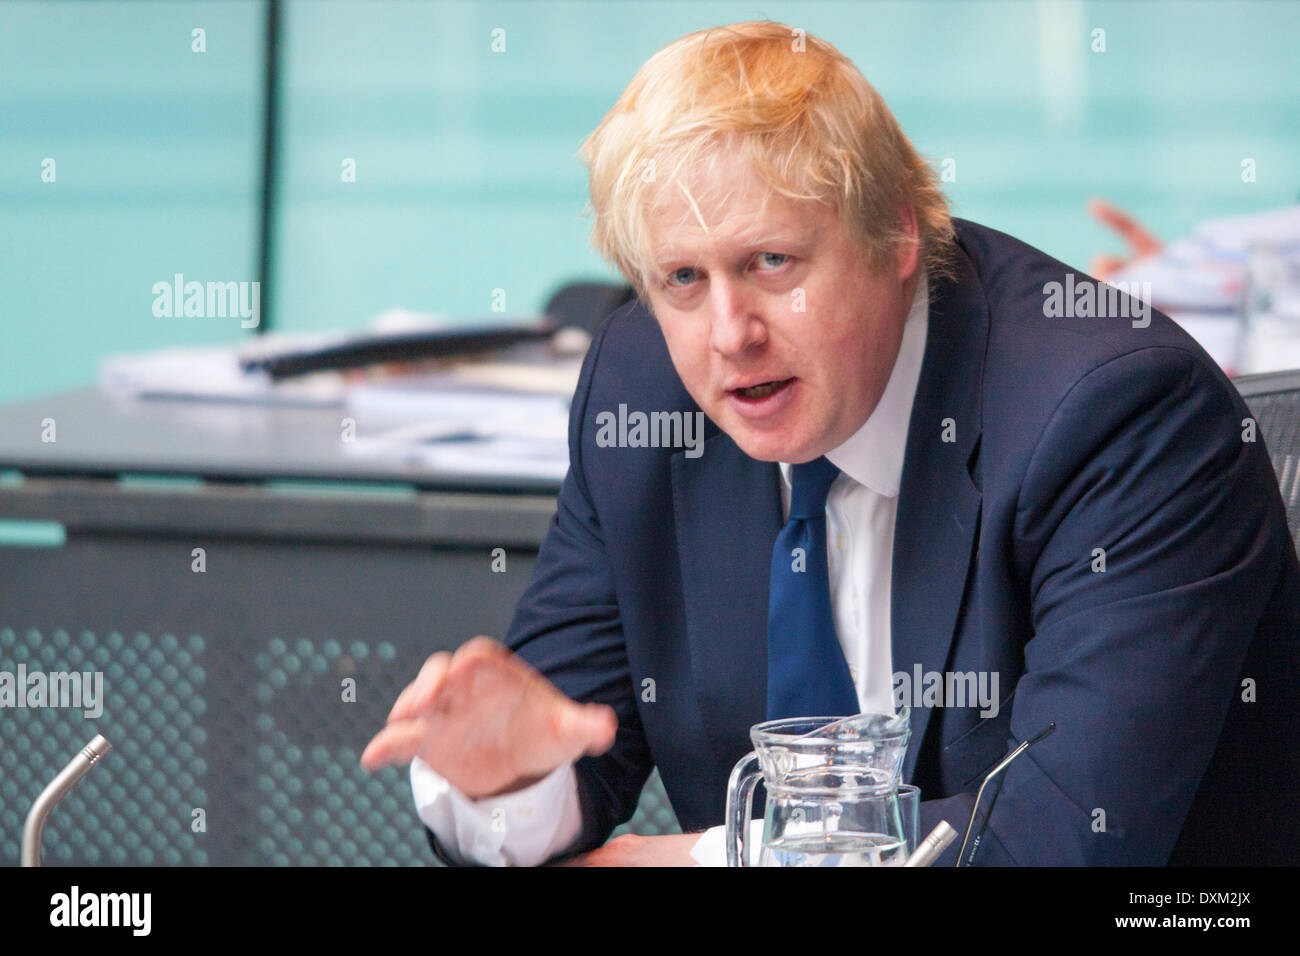 London, March 27th 2014. Mayor of London Boris Johnson speaks as the Police and Crime Committee of the London Assembly question him on undercover policing and the governance of the Metropolitan Police. Credit:  Paul Davey/Alamy Live News - Stock Image